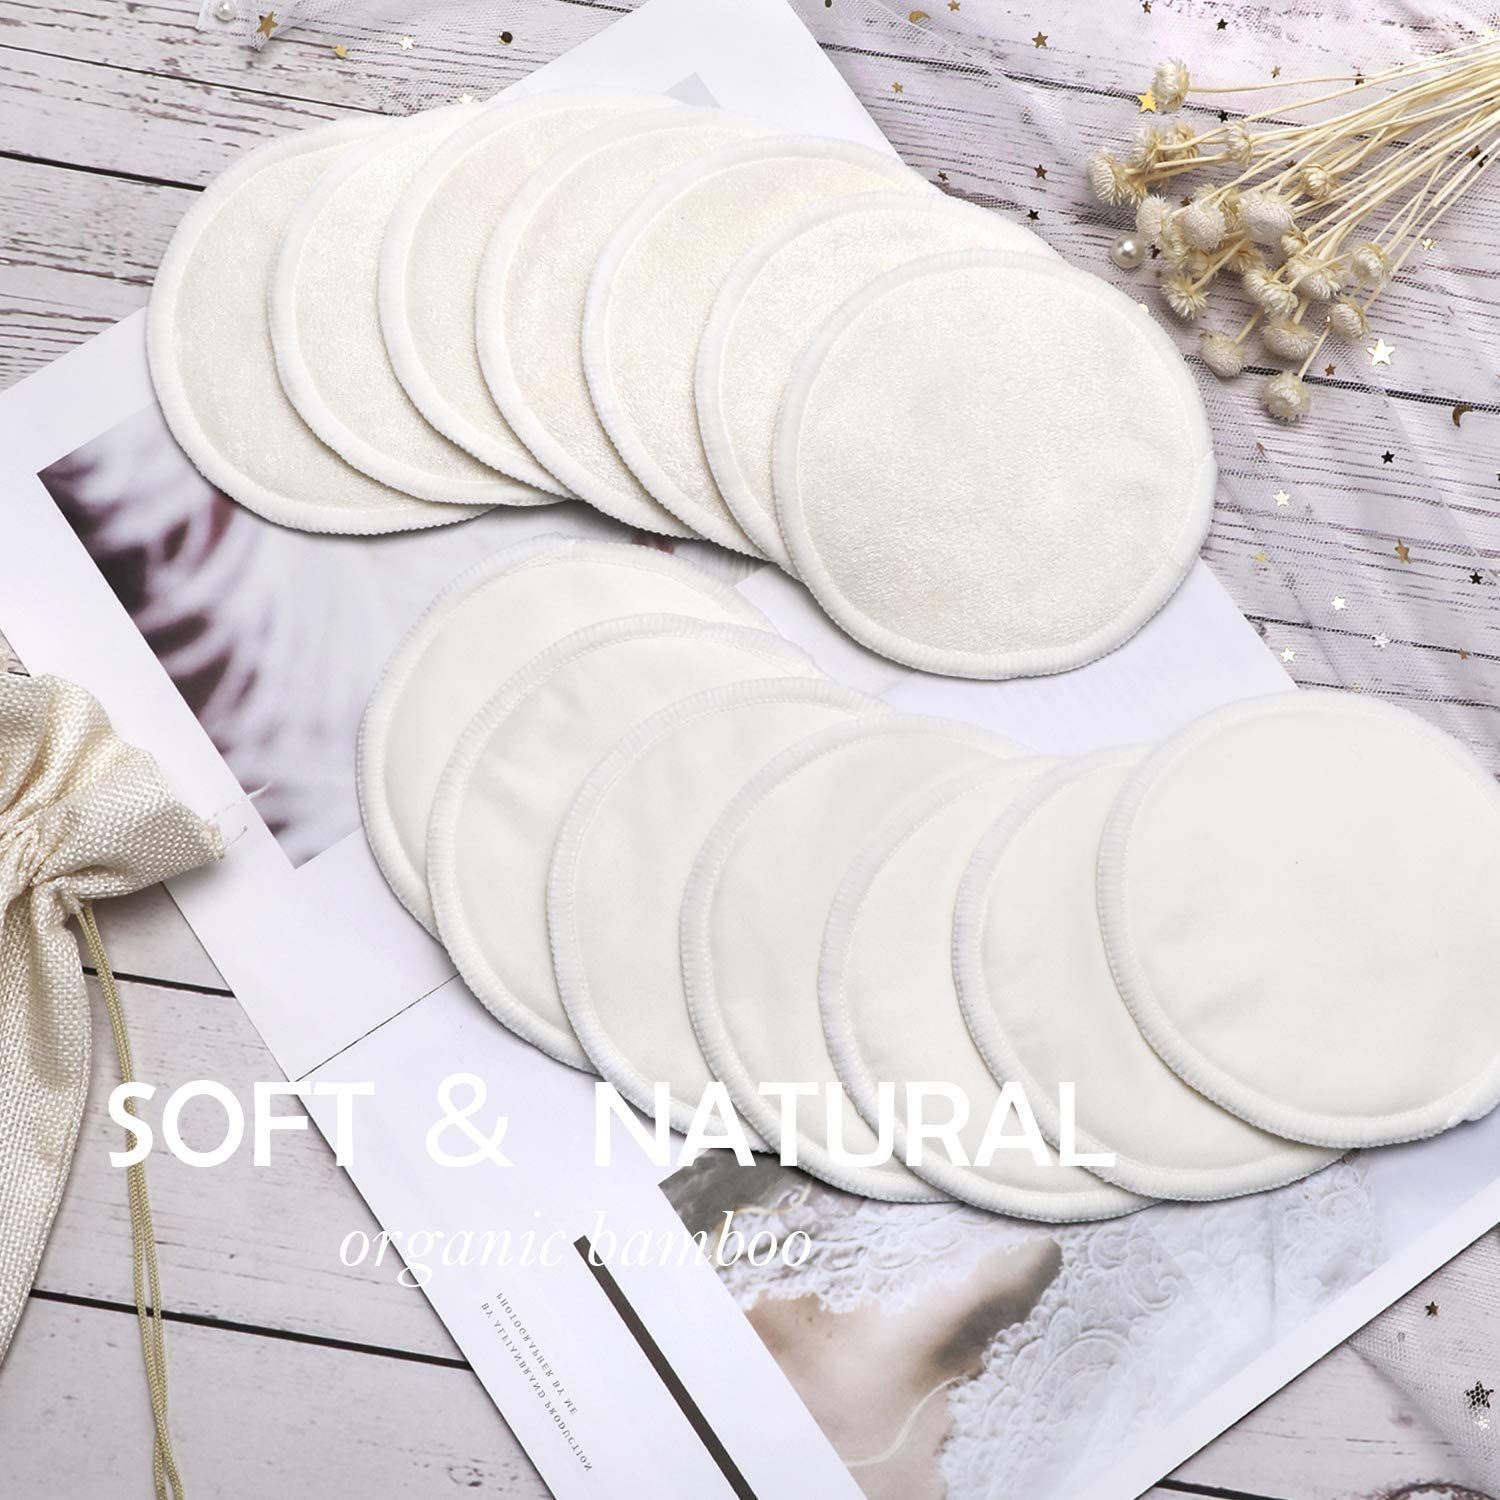 Absorbent Eco Pads for Breastfeeding Reusable Organic Bamboo Breast Pads with Laundry Bag and Storage Bag Soft Hypoallergenic PHOGARY 14PCS Washable Nursing Pads